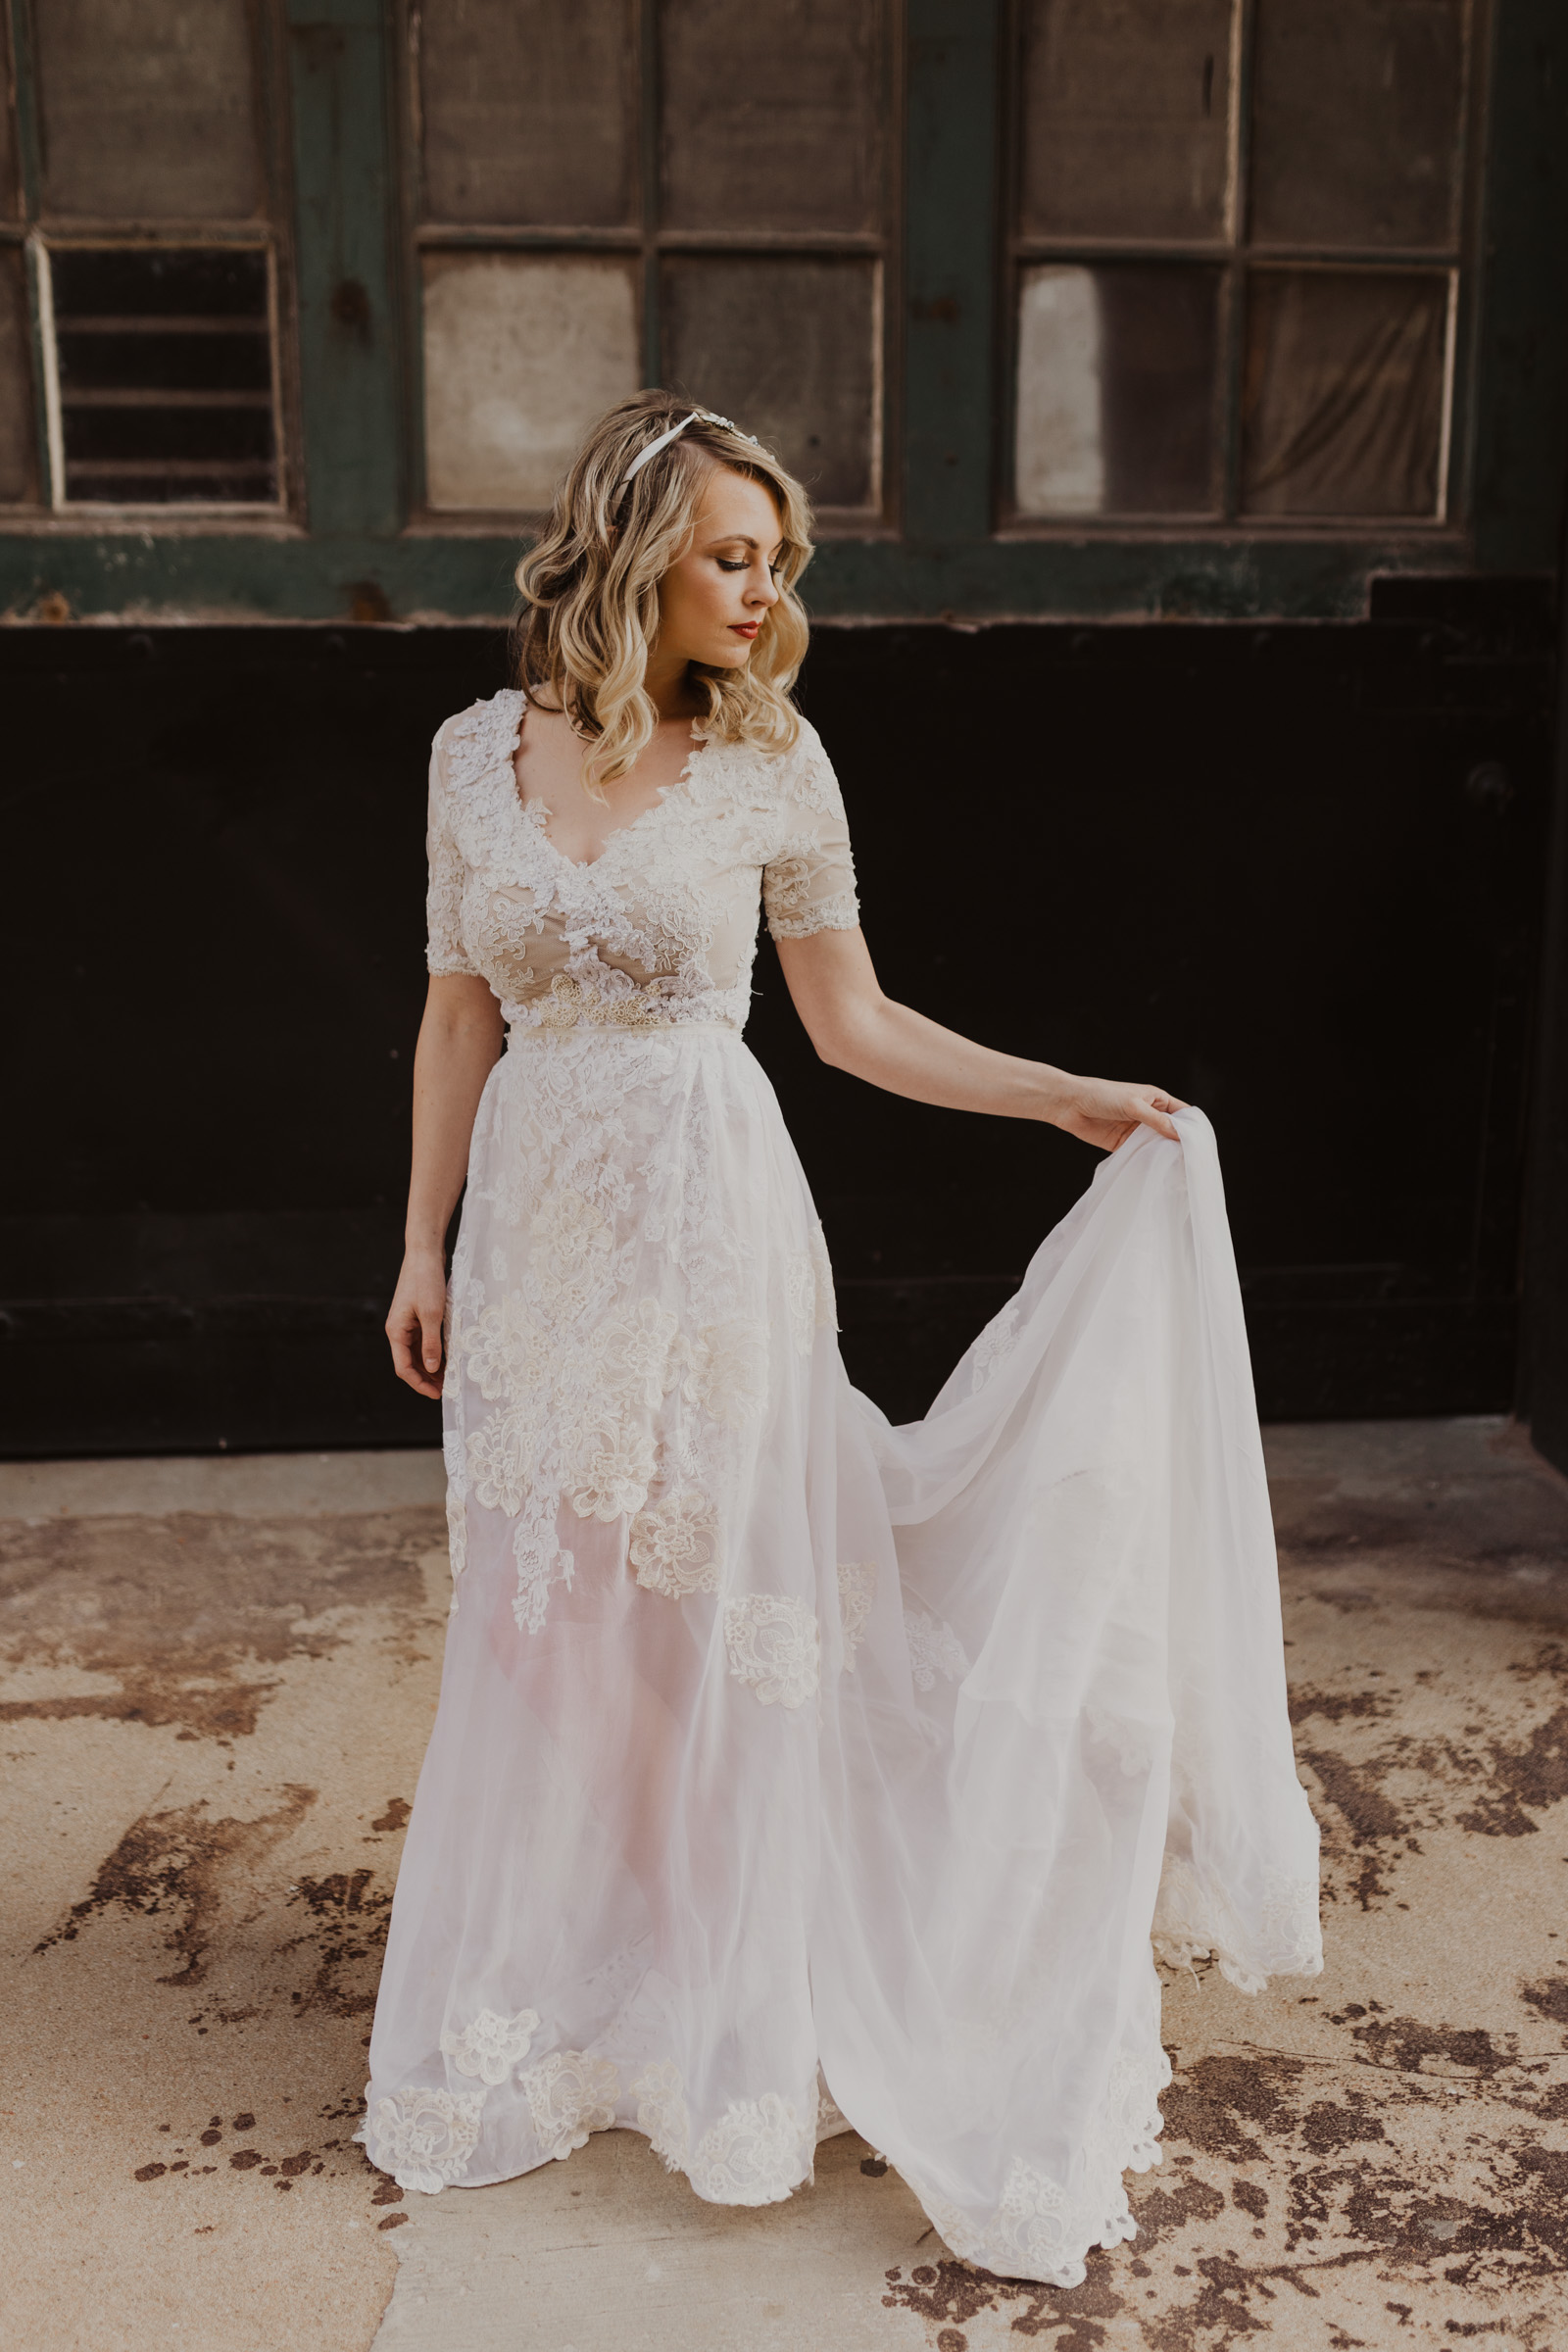 alyssa barletter photography styled shoot wedding inspiration kansas city west bottoms photographer motorcycle edgy intimate-25.jpg